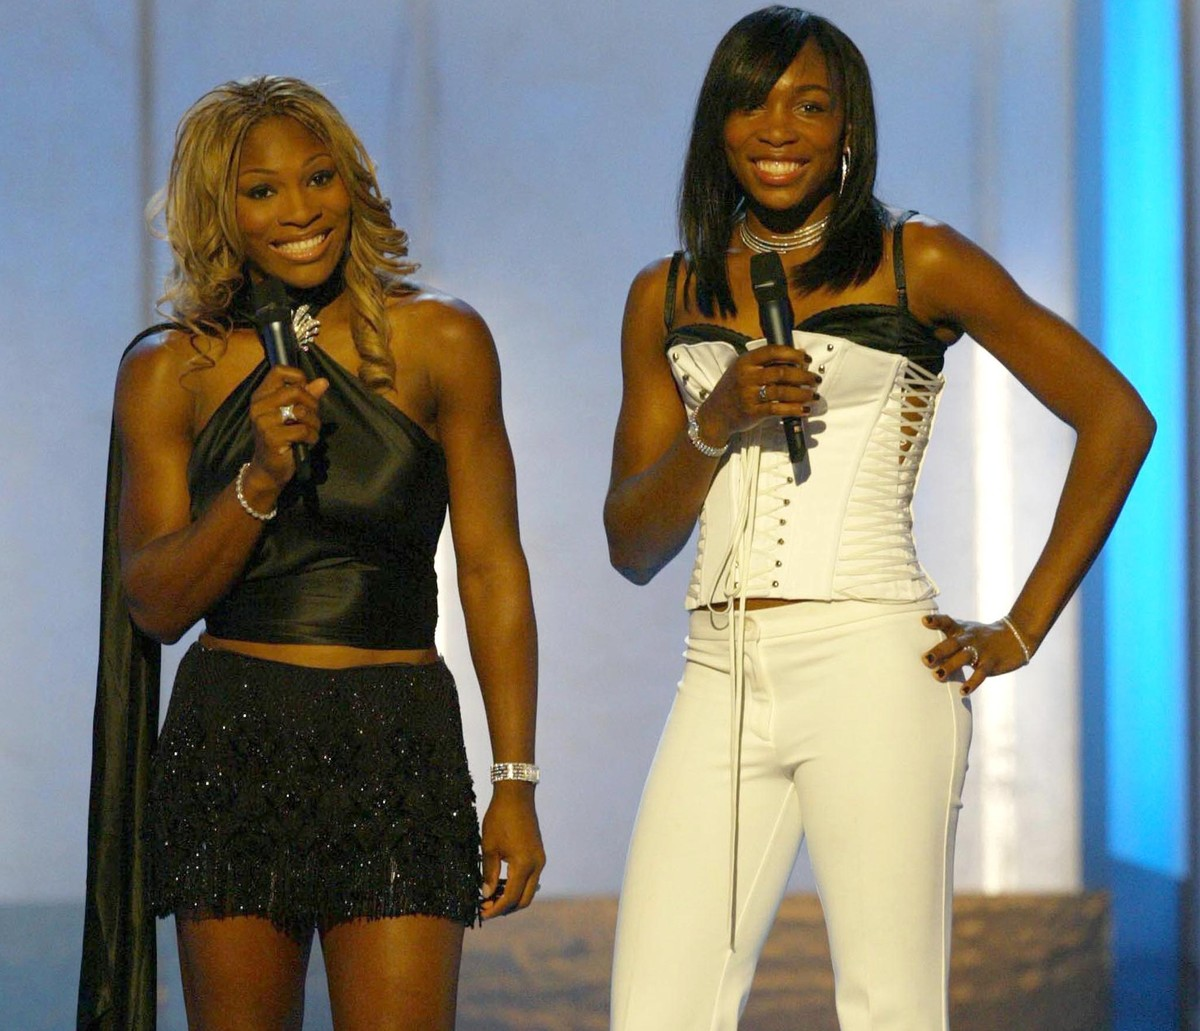 Serena and Venus Williams stand on stage during the 2002 VH1 Vogue Fashion Awards.